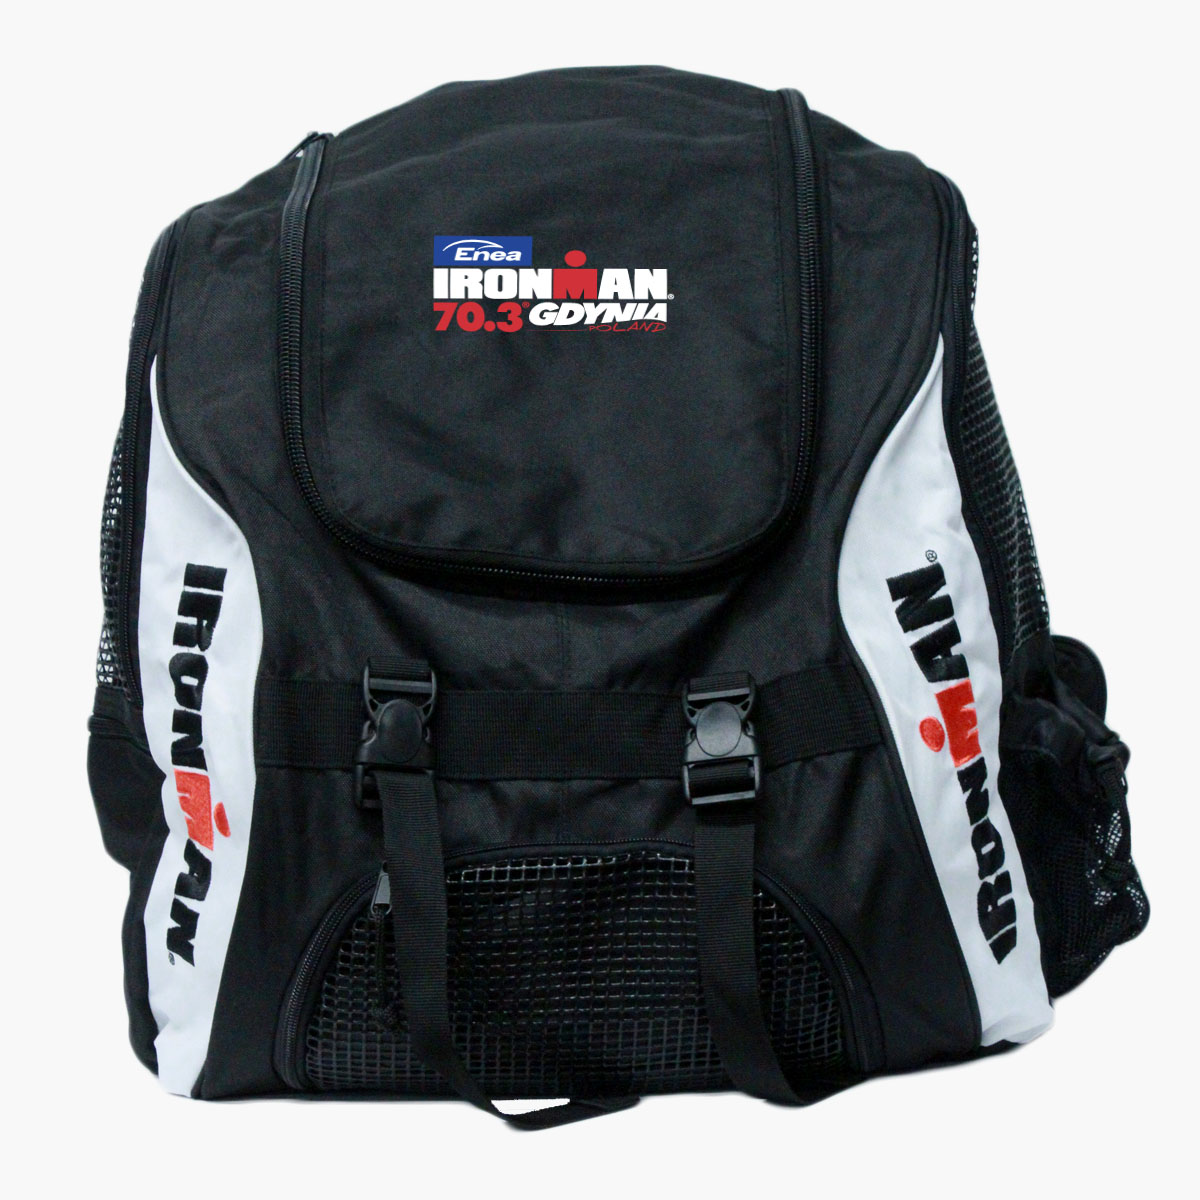 IRONMAN 70.3 Gdynia Event Backpack